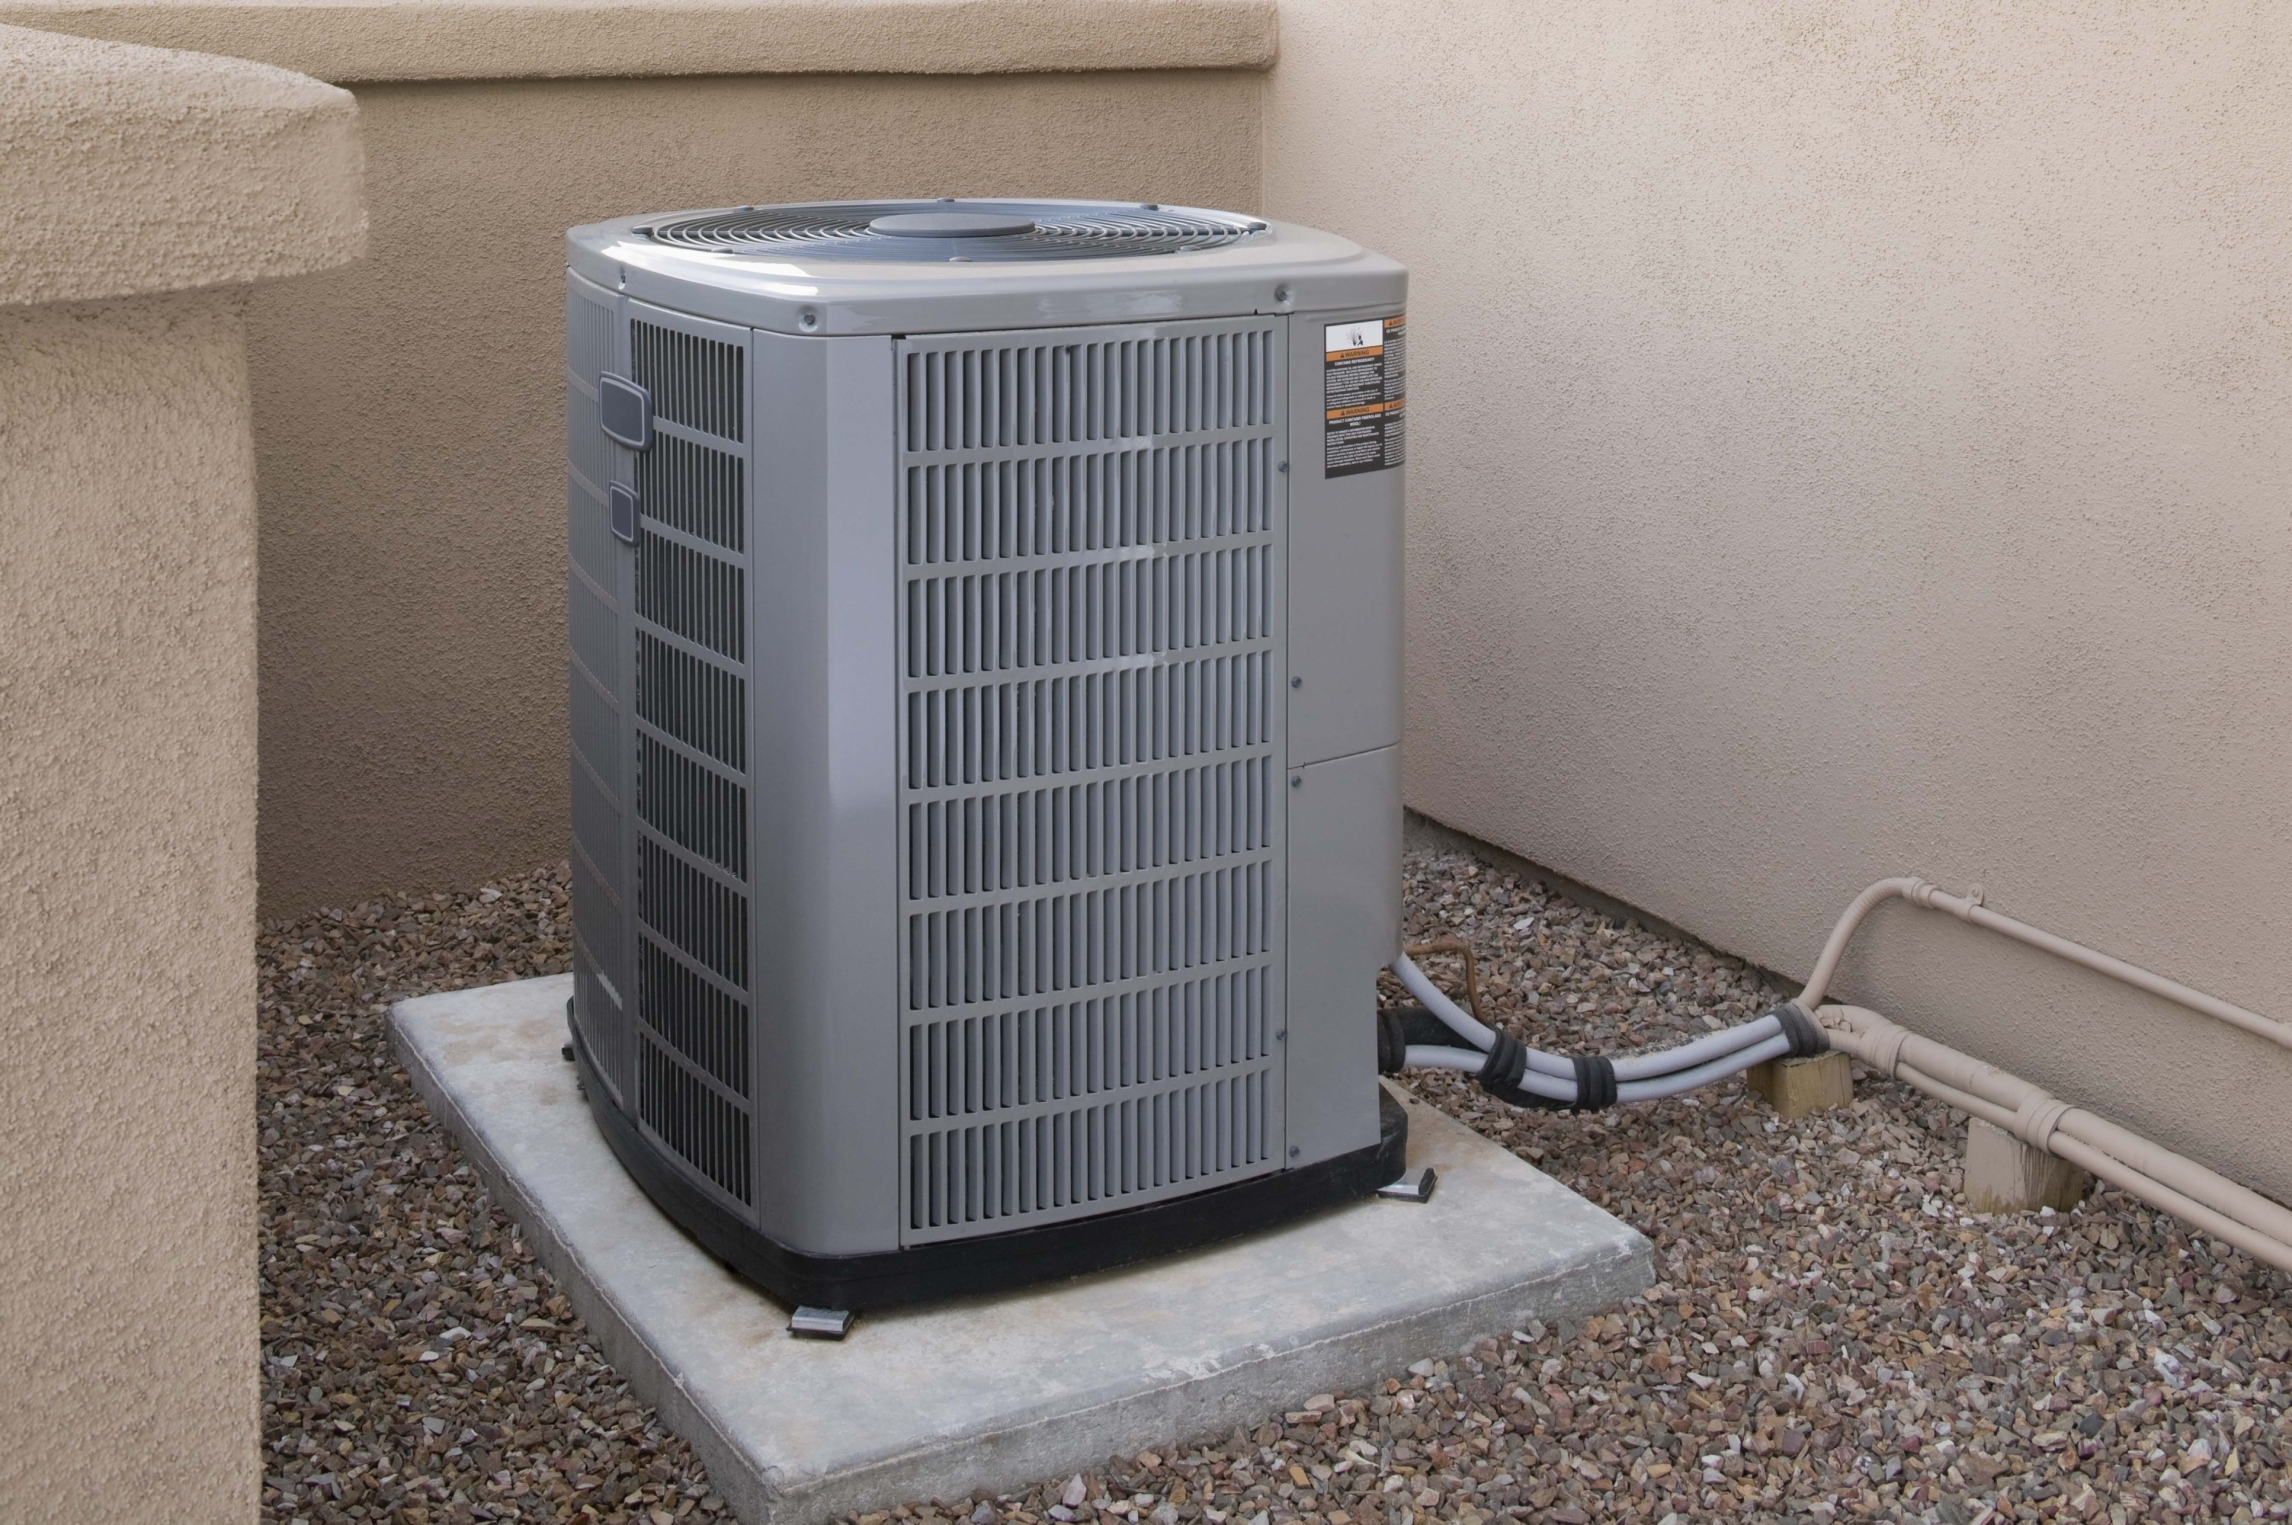 Air Conditioner Unit Problems With Two Stage Air Conditioners Home Guides Sf Gate